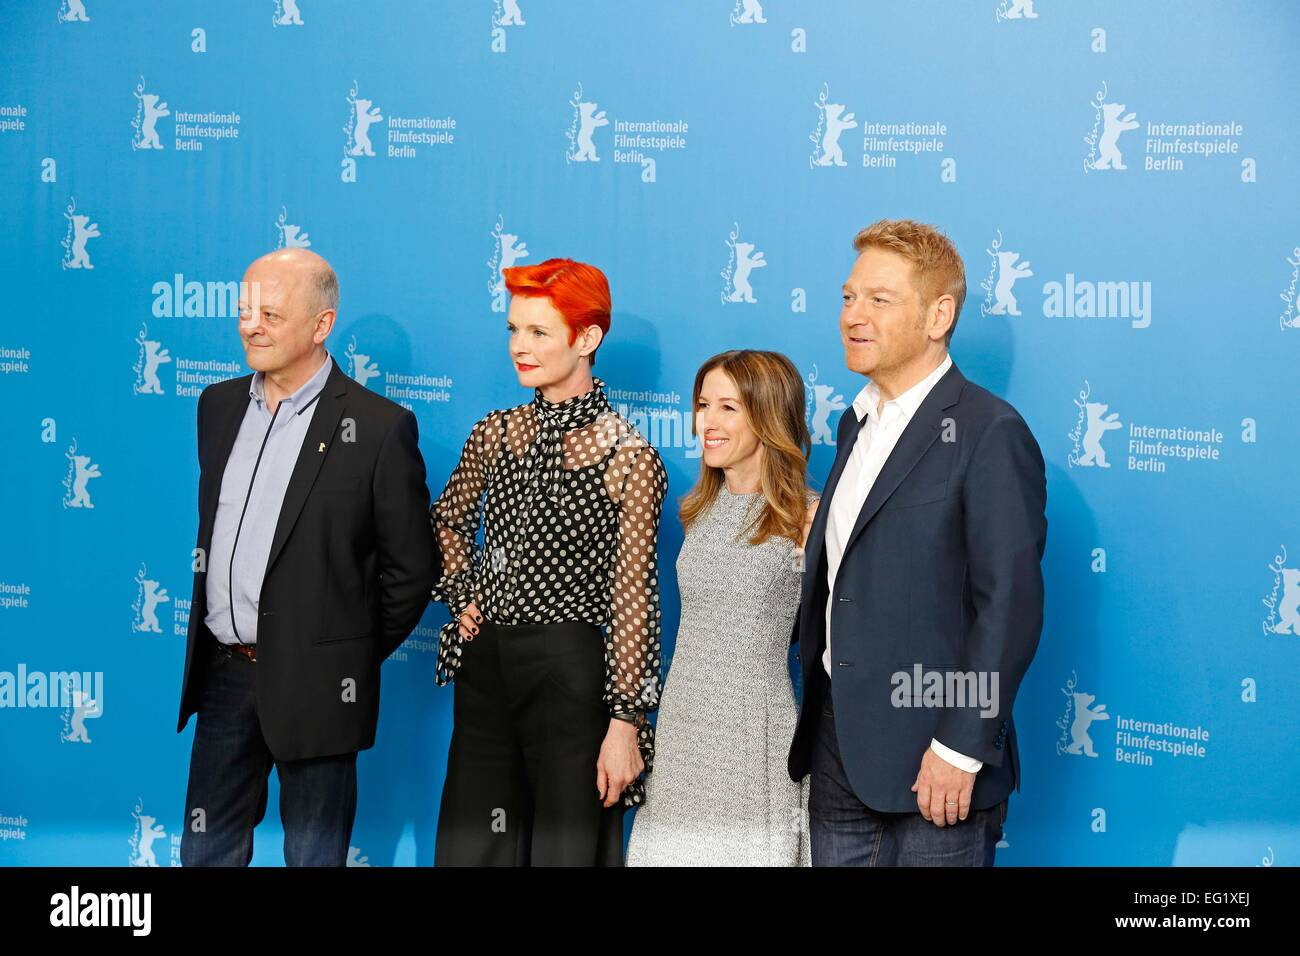 Berlin, Ca, Germany. 13th Feb, 2015. David Barron, Sandy Powell ...